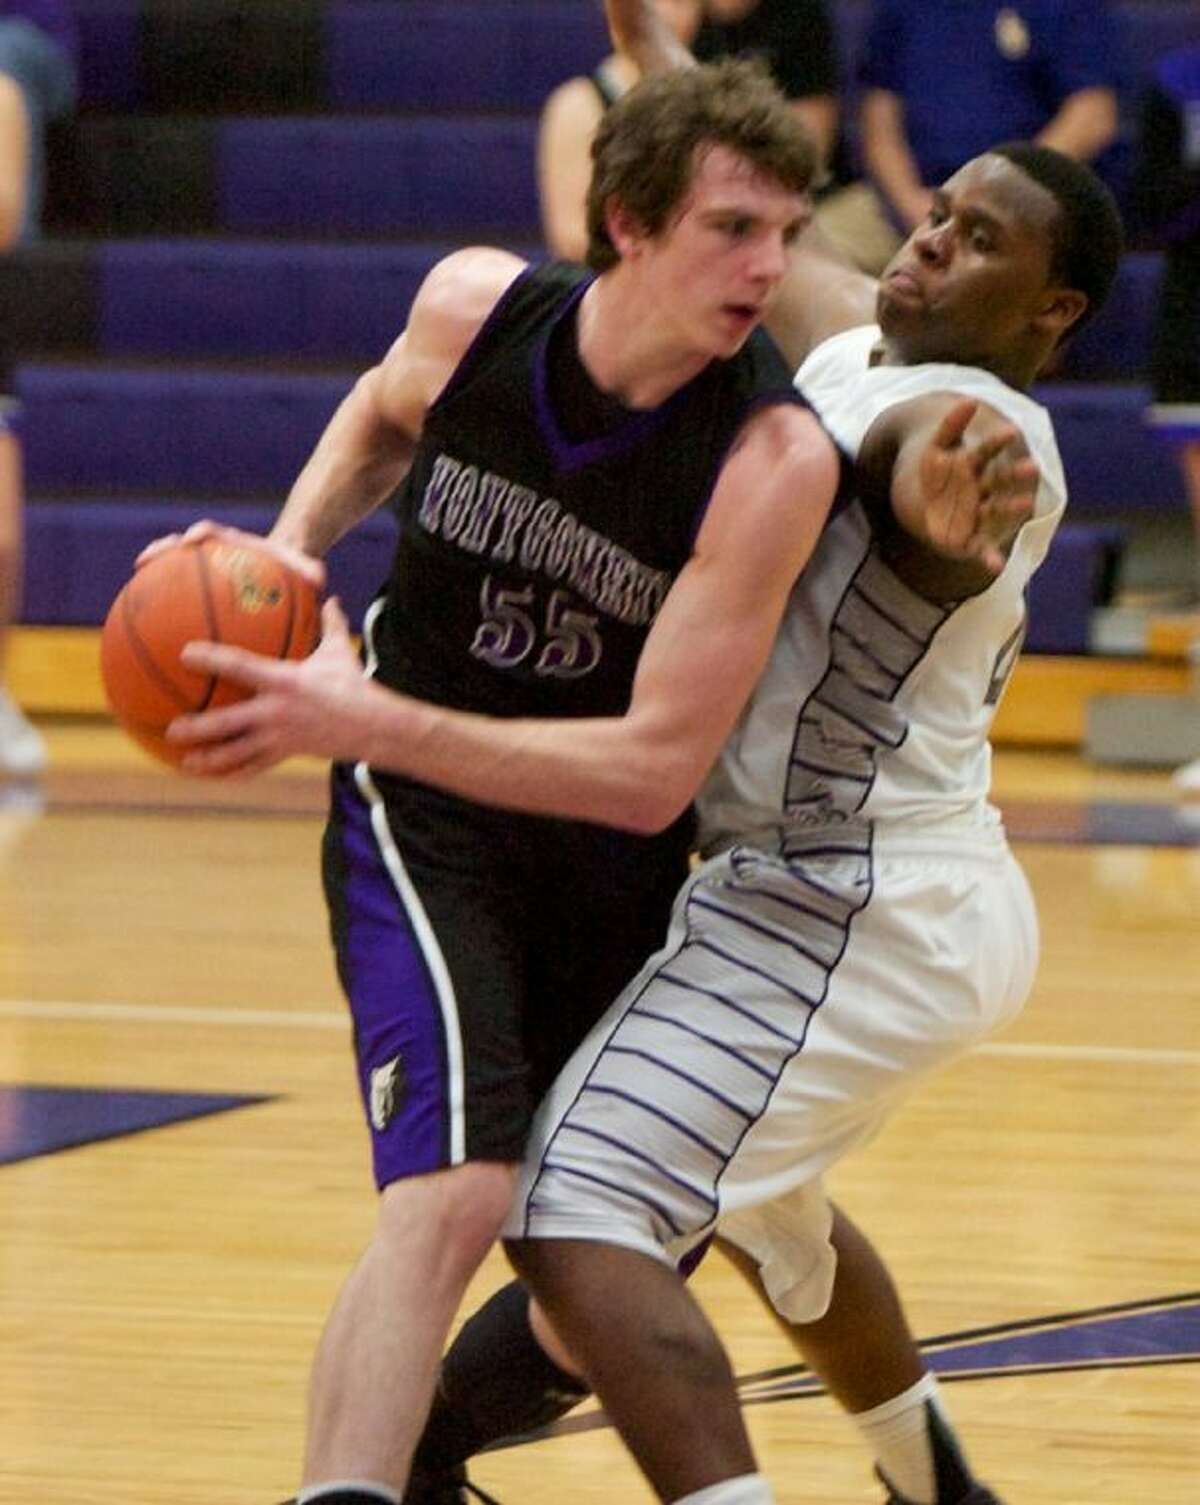 Montgomery's Currie Byrd battles against Willis' Cle Toliver during Friday night's game at Willis High School.